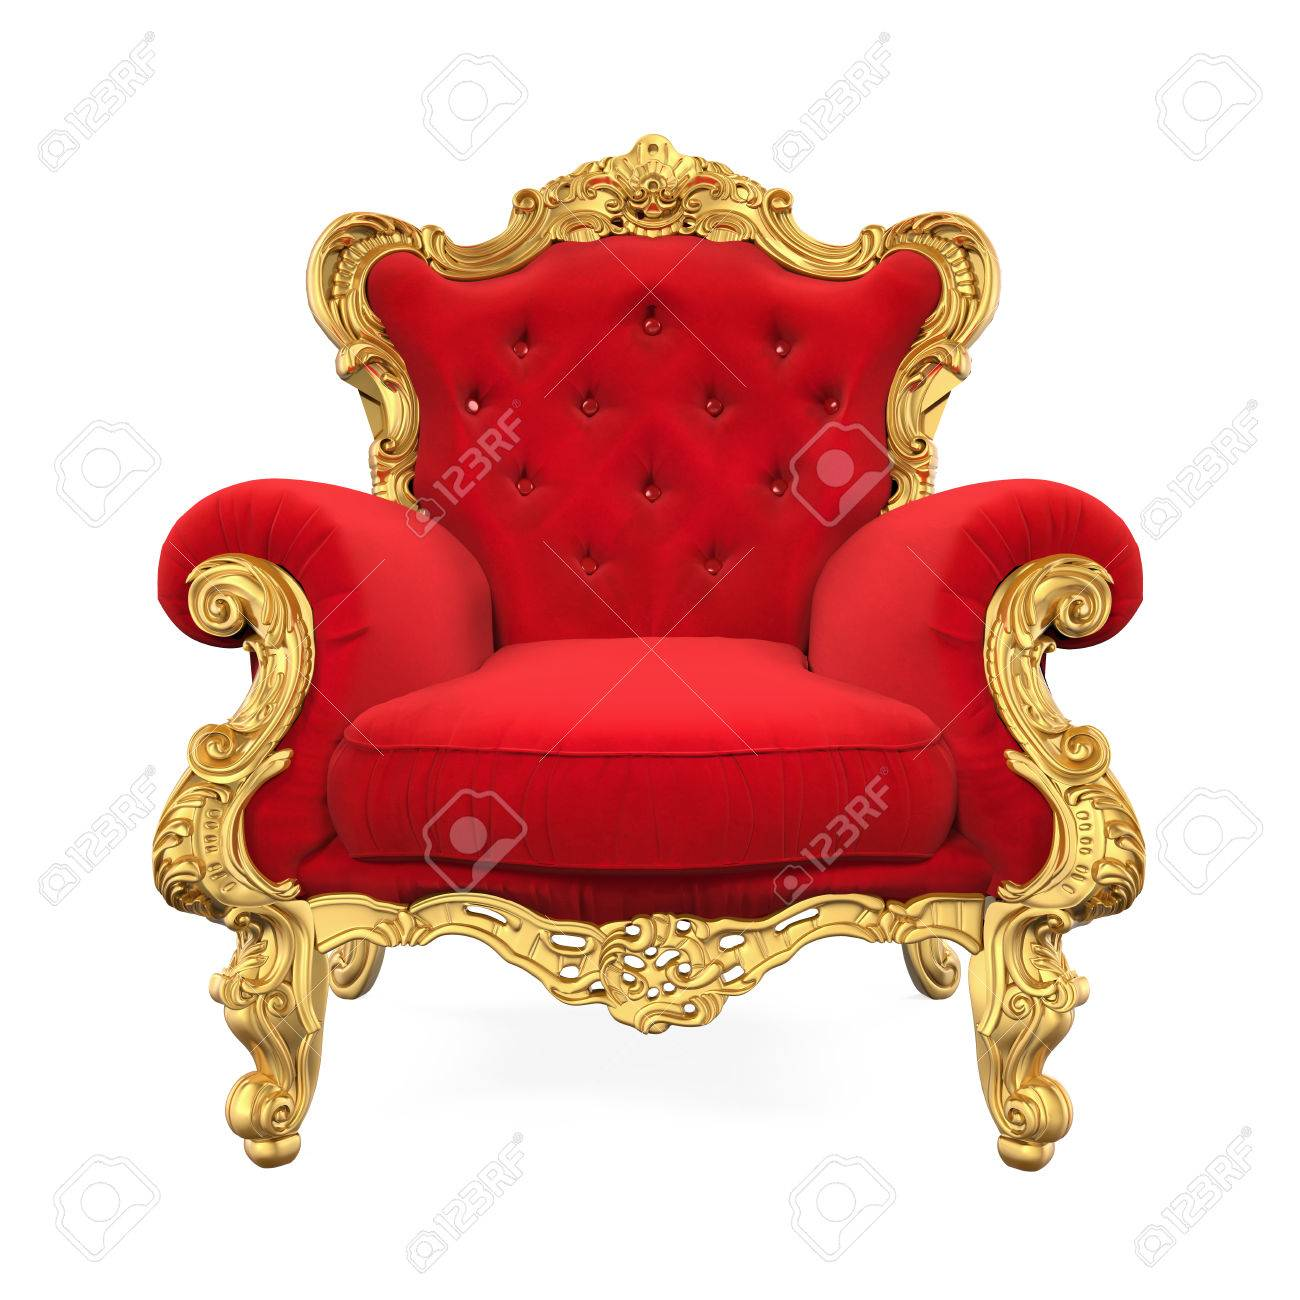 Throne Chair Isolated - 71072717